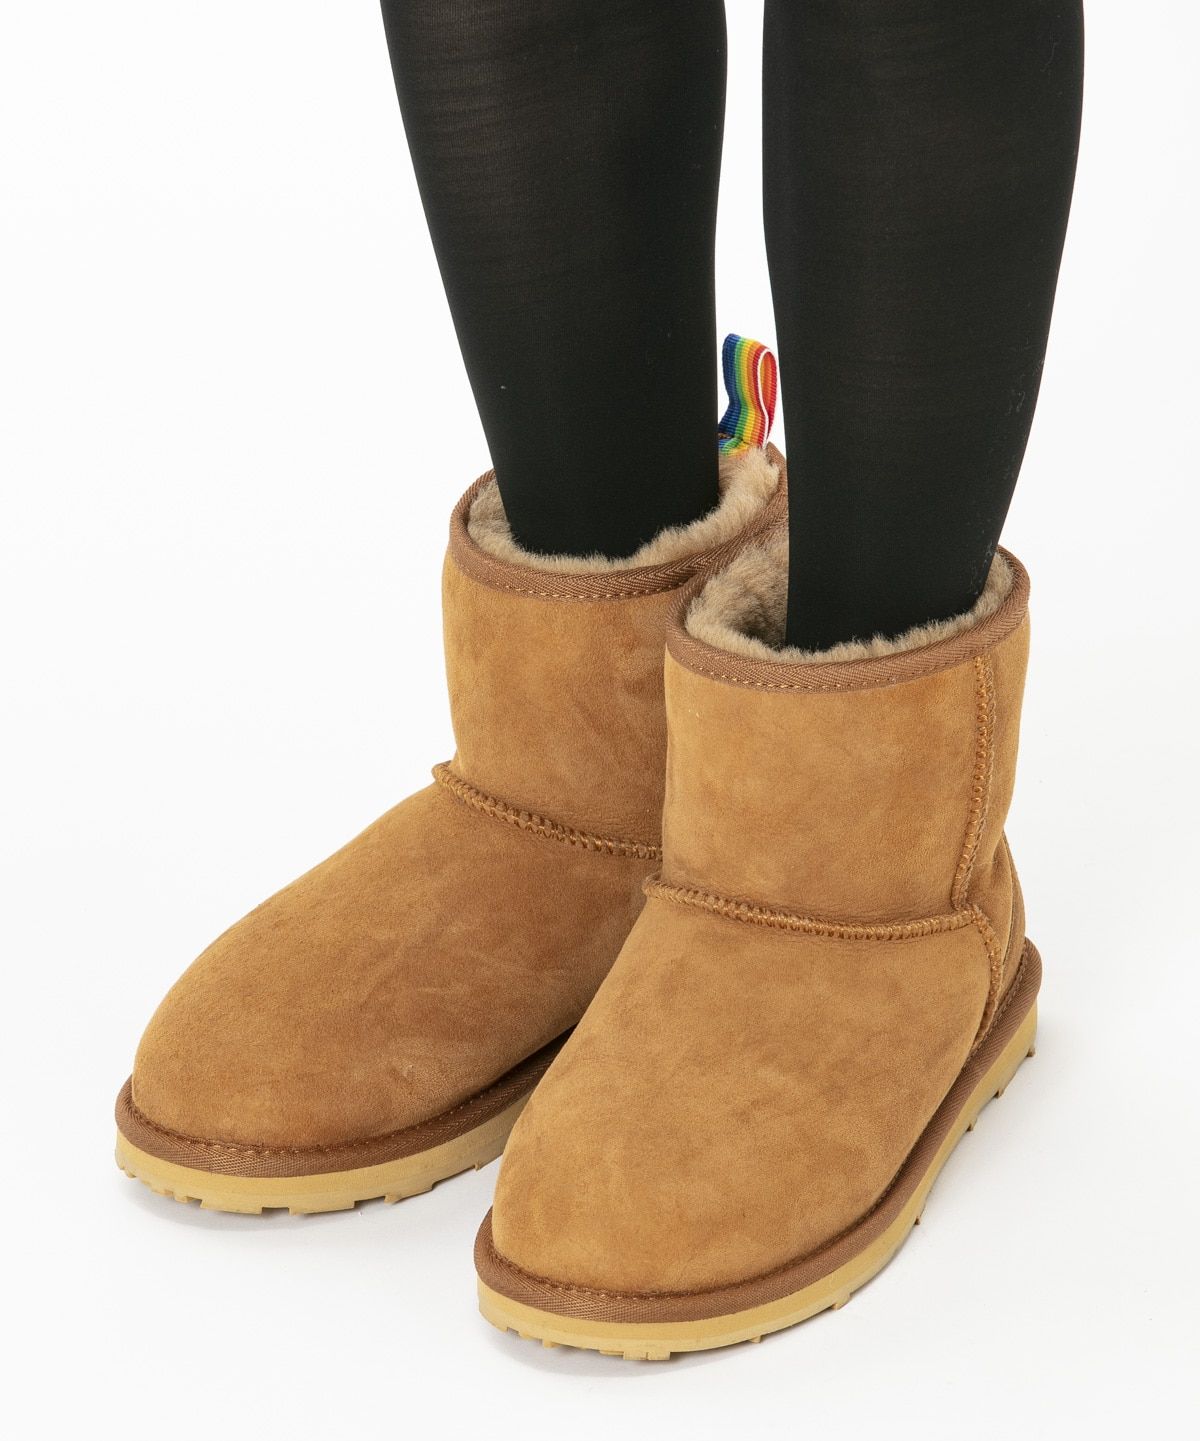 Booby Mouton Shorts Boot(ブービームートンショートブーツ(シューズ))